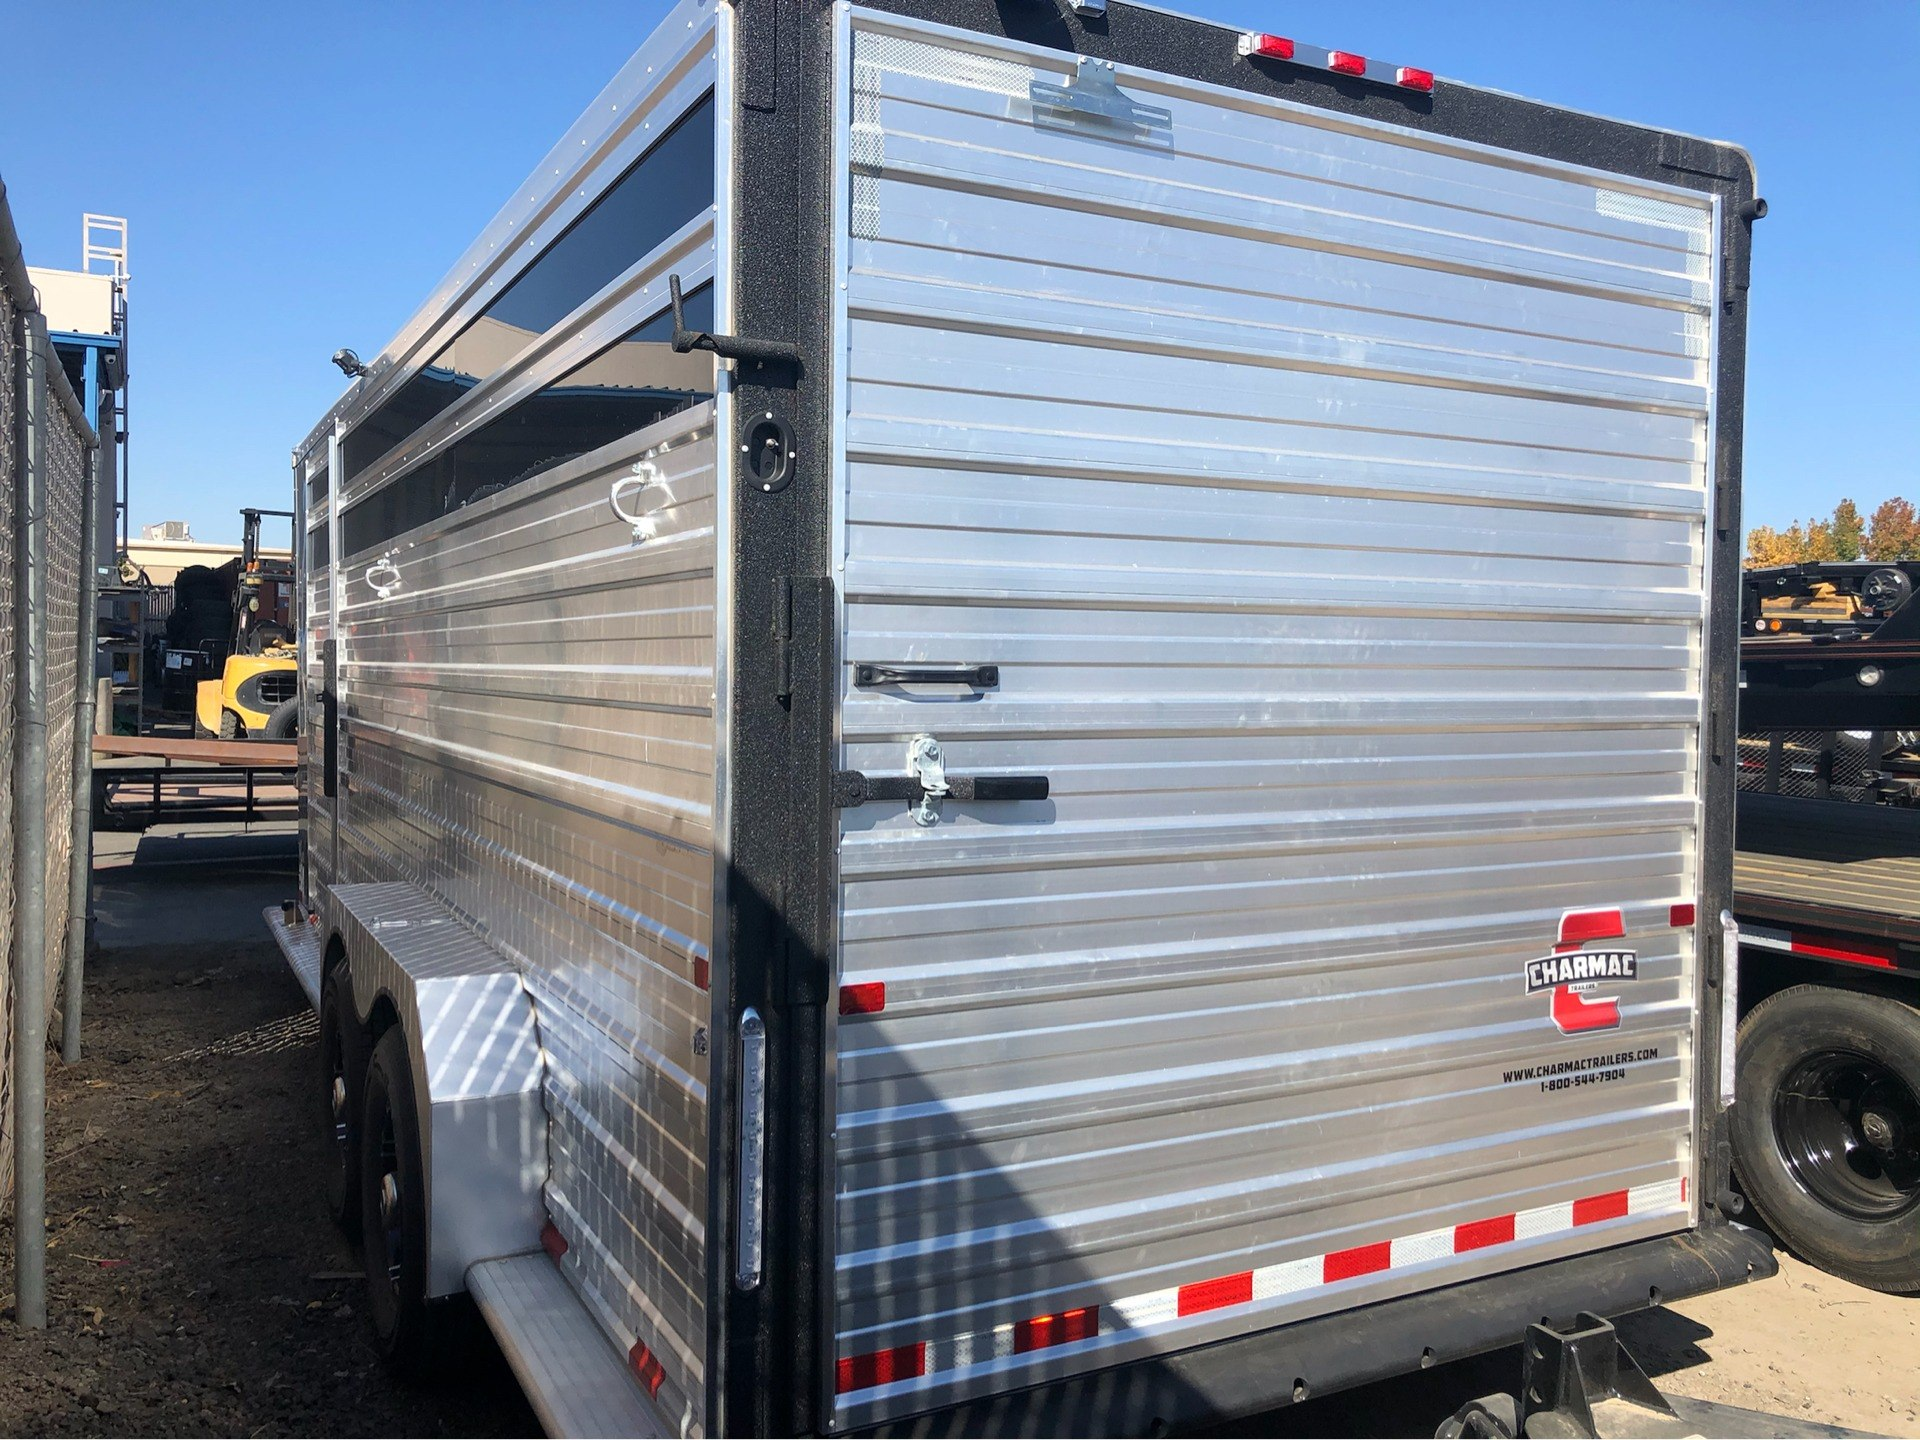 2019 Charmac Trailers 20' RANCHER GN in Elk Grove, California - Photo 15